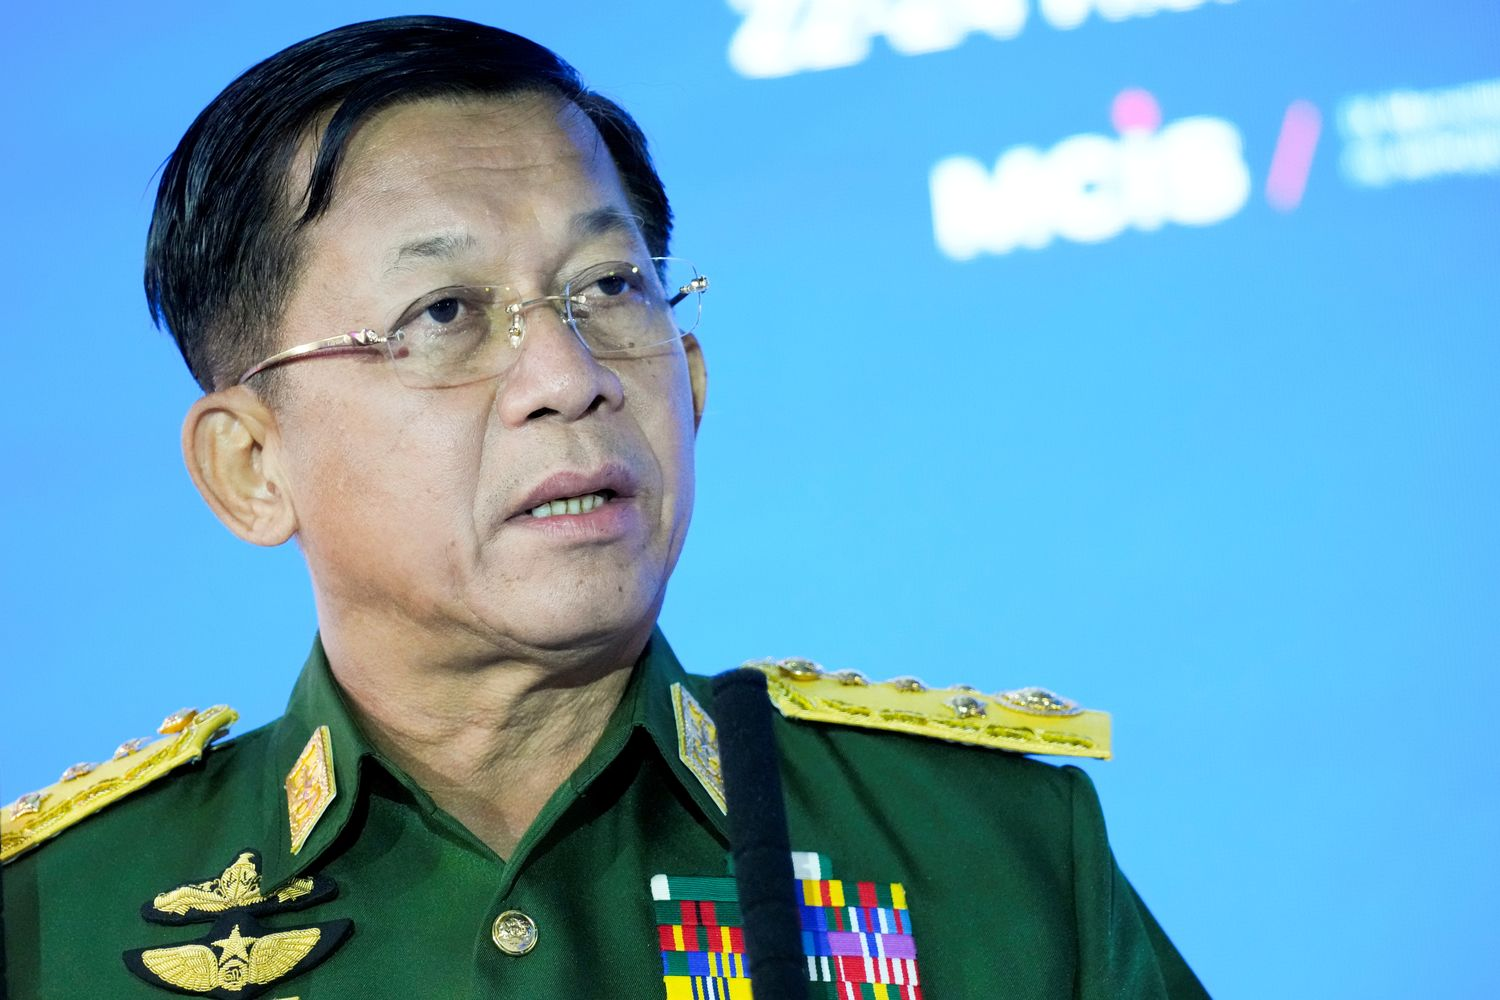 Senior General Min Aung Hlaing, commander-in-chief of Myanmar's armed forces, delivers his speech at the IX Moscow conference on international security in Moscow on June 23 this year. (Reuters photo)